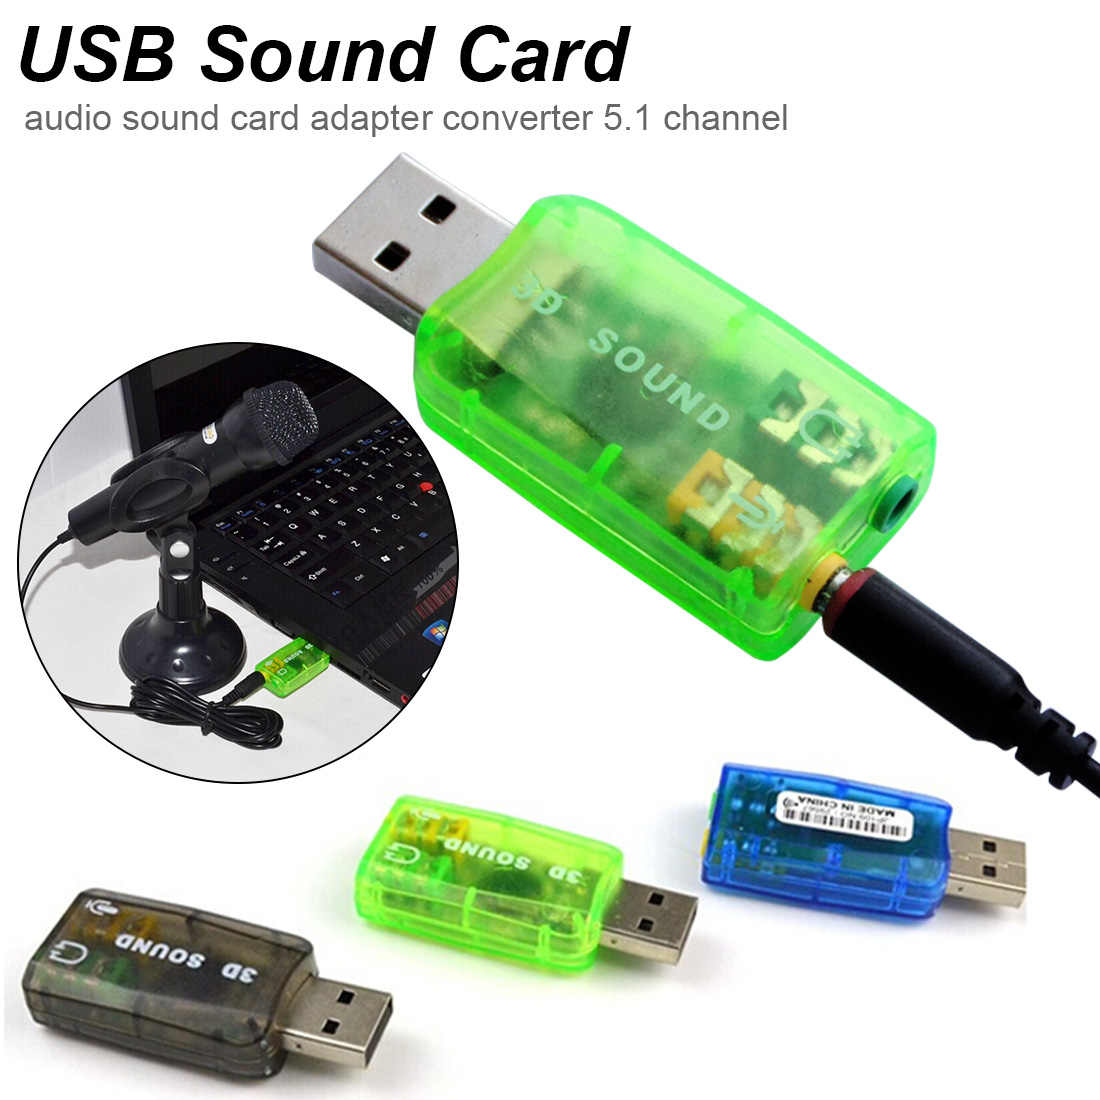 Green 5.1 USB External Stereo Sound Card with 3.5mm Headphone and Microphone Jack Converter for Windows Desktop Mac USB 3D Sound Card Laptop Linux PC